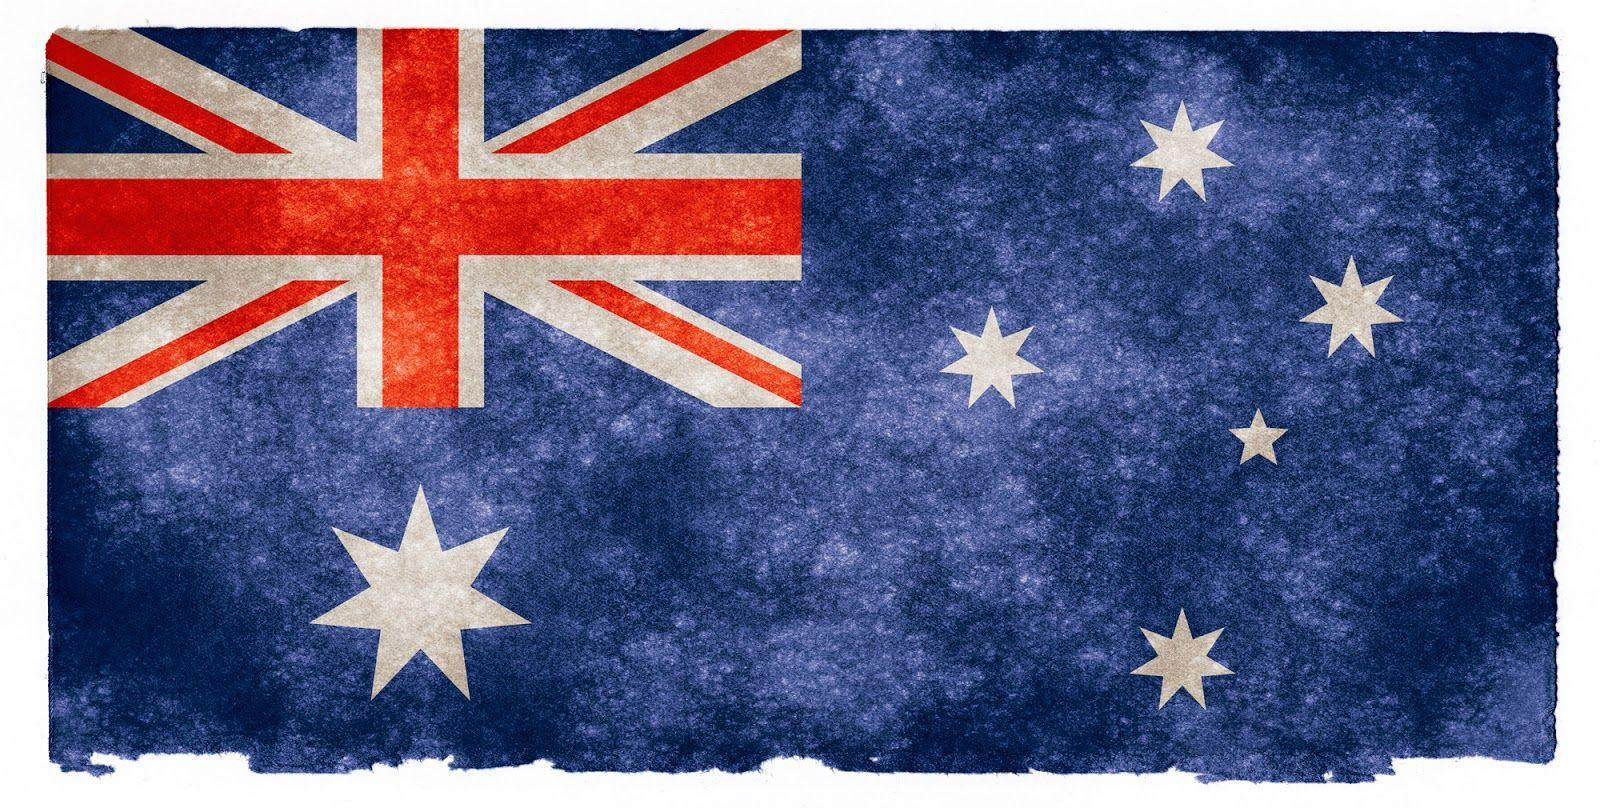 Australia Flag Wallpapers Wallpaper Cave